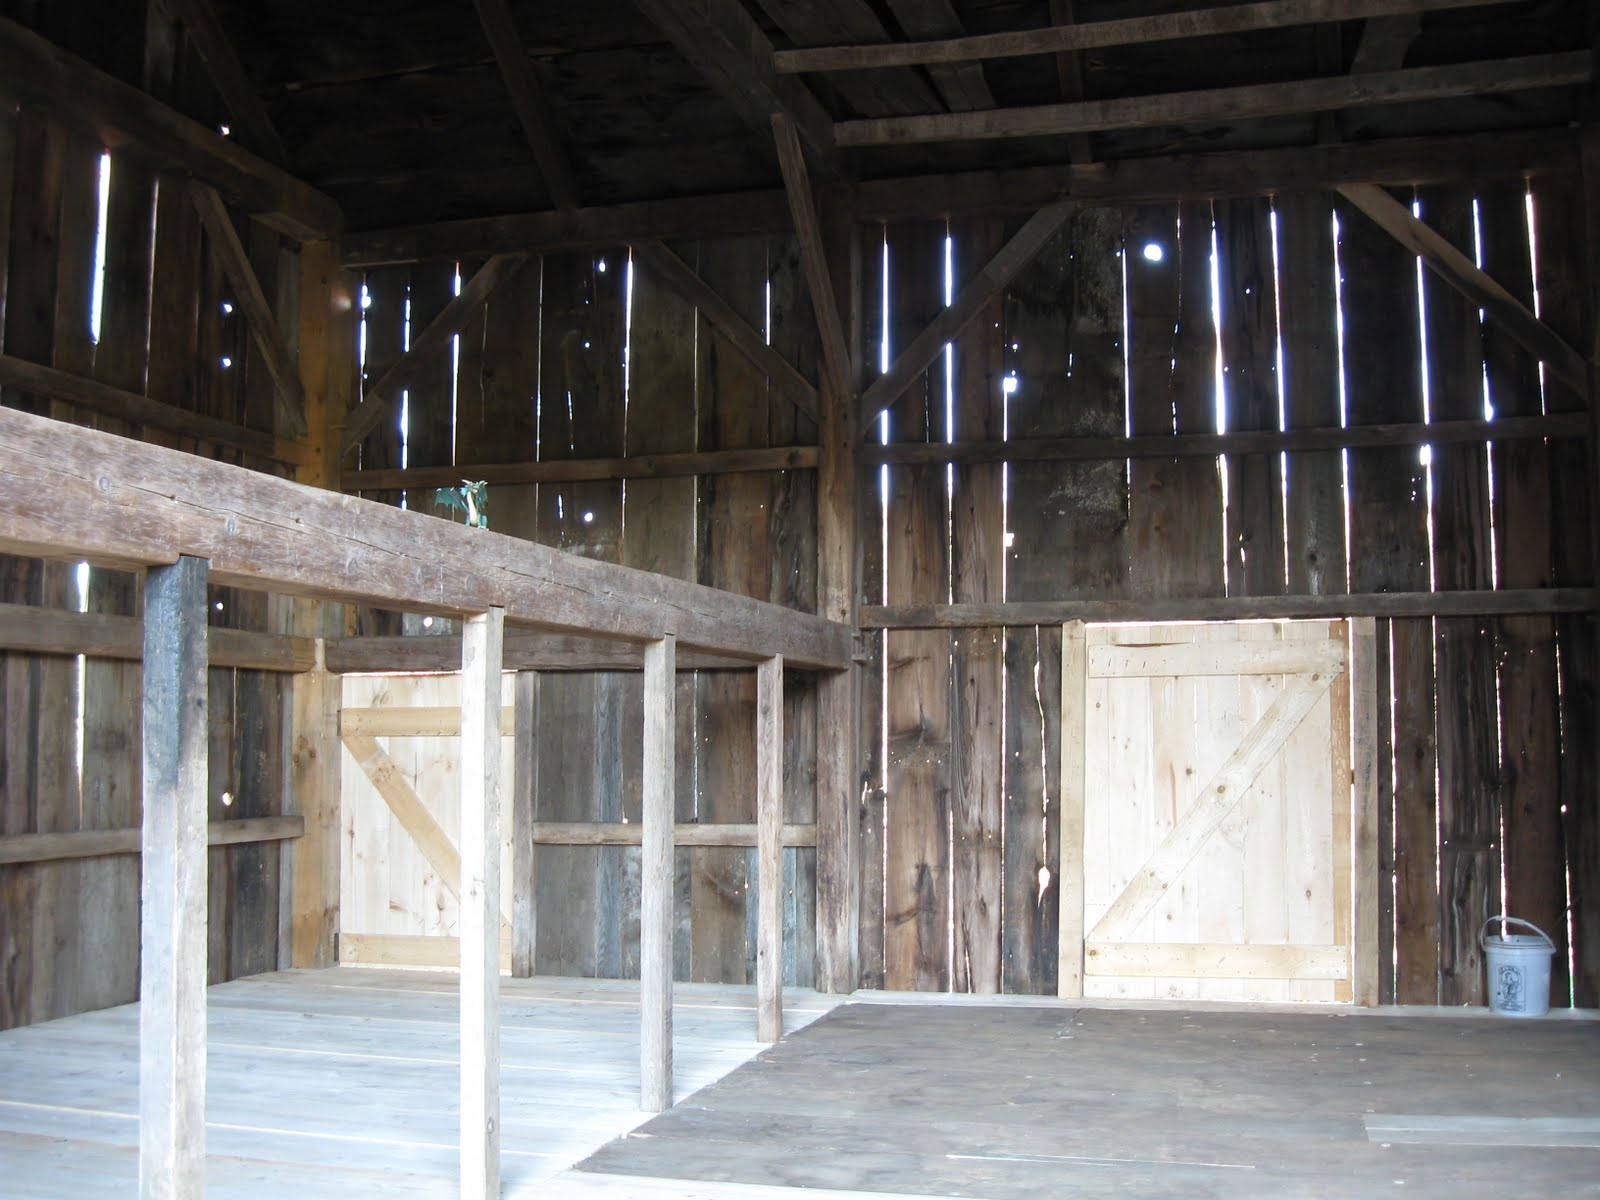 A view of the finished interior with pegged planks in the drive and three inch thick planks clear-spanning in the stanchion bay.